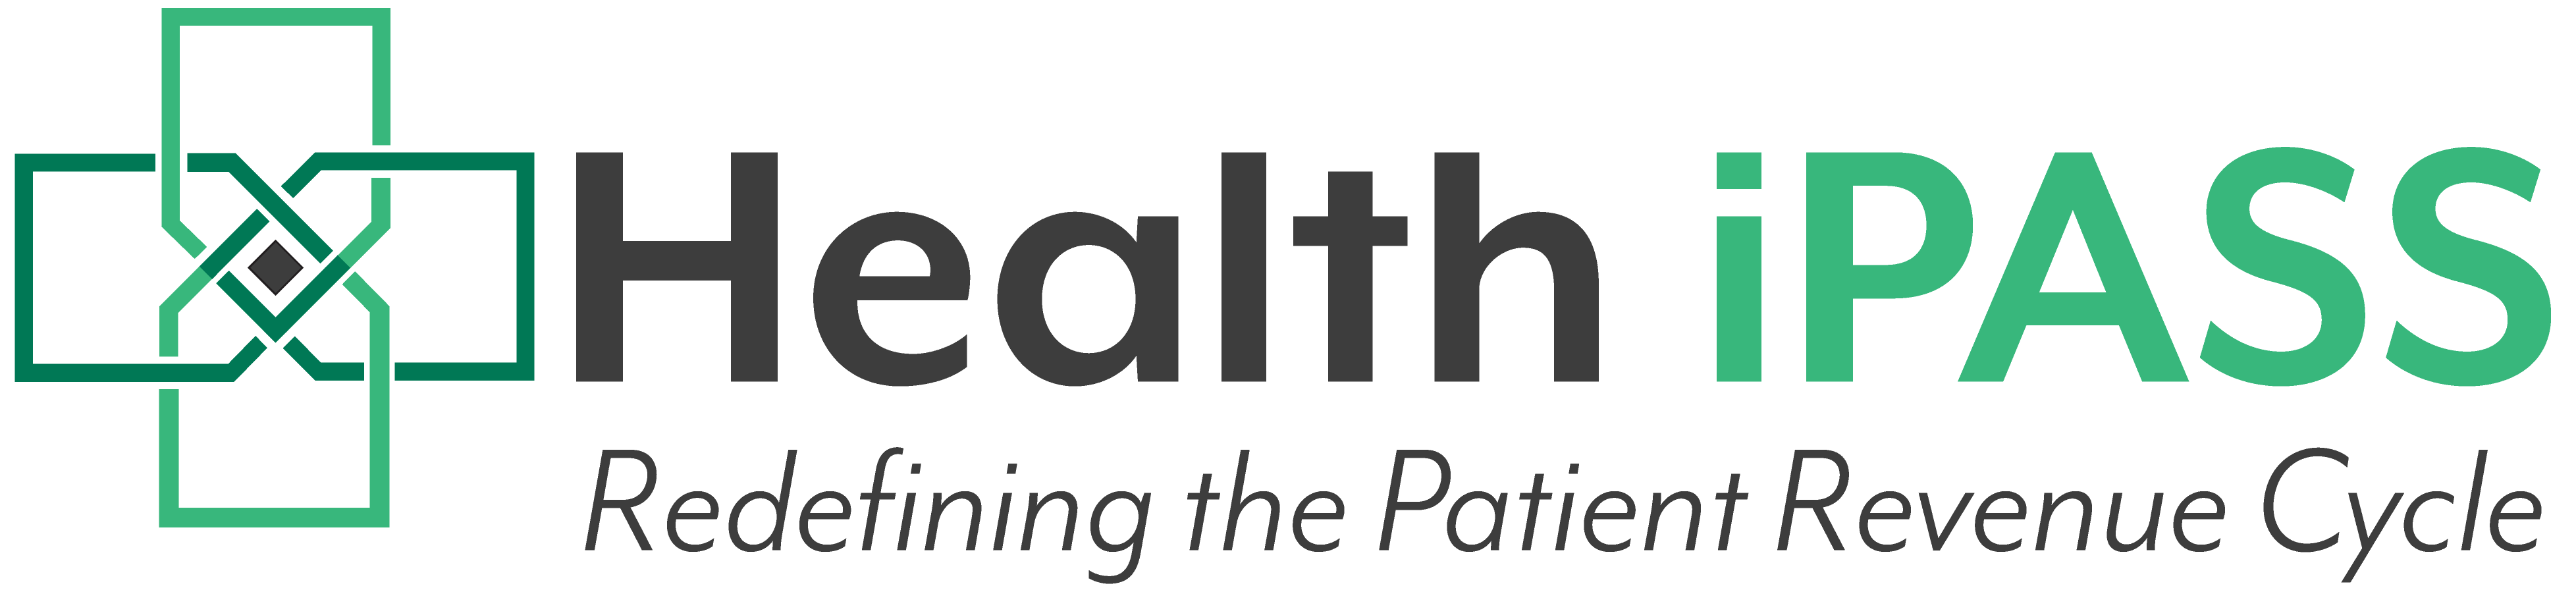 patient revenue cycle patient payment solution to help increase patient net collections